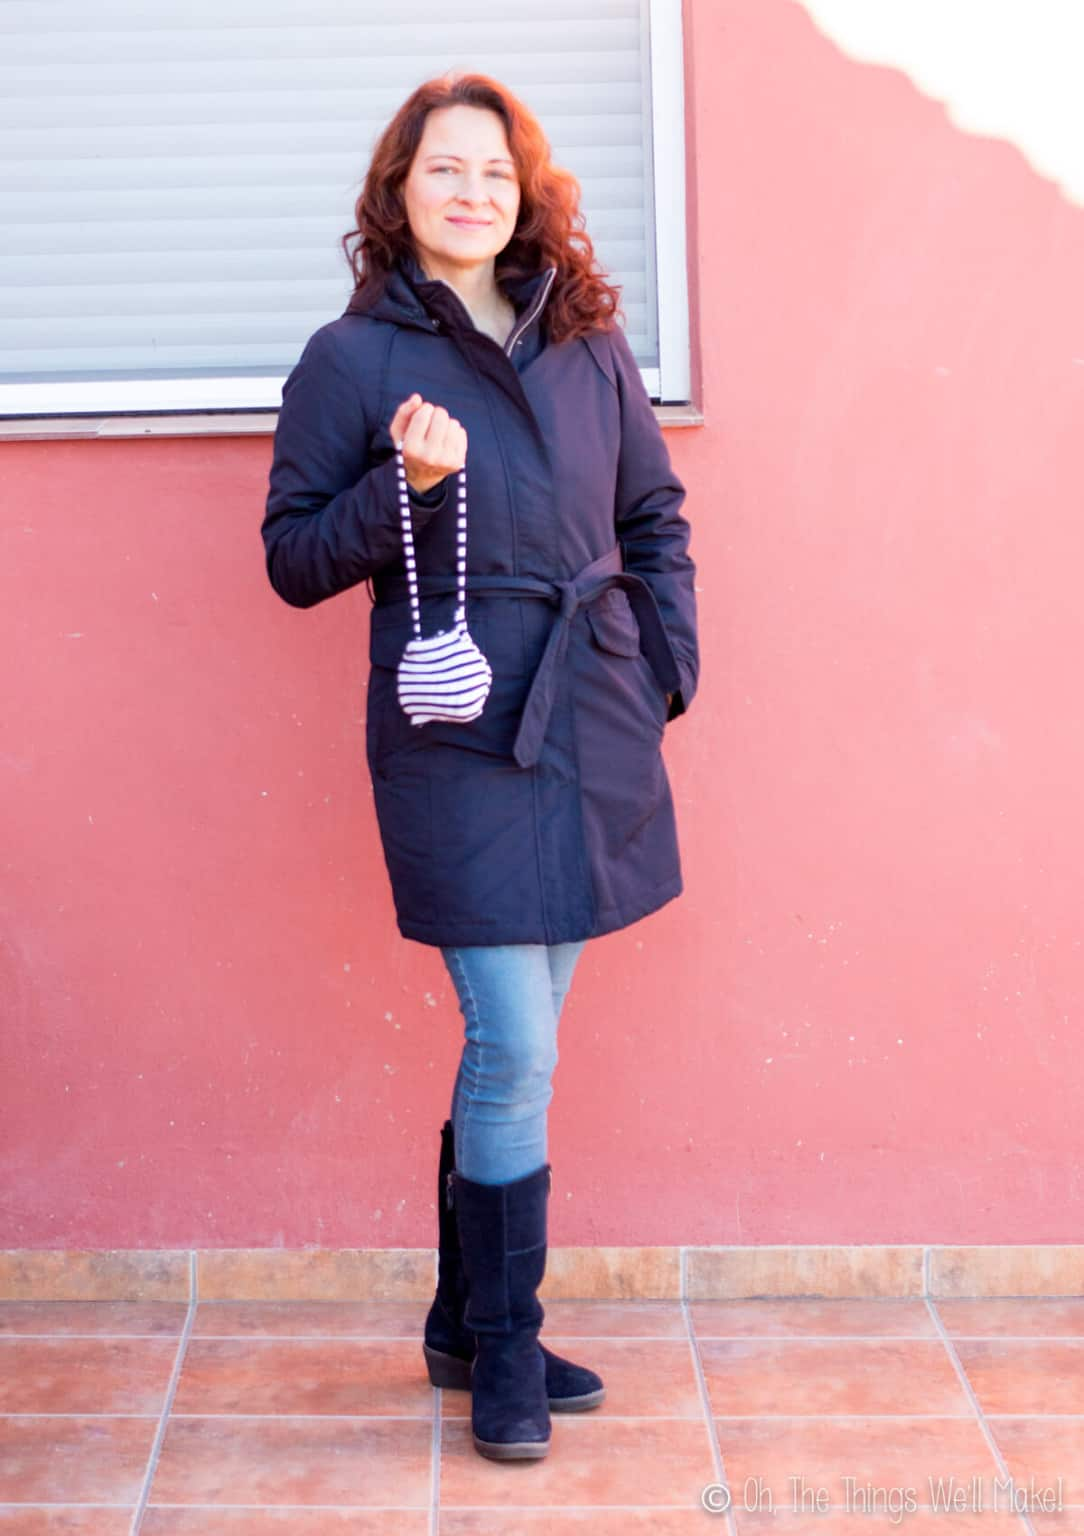 A caucasian woman wearing a navy blue coat, denim pants, and black boots, holding her handmade striped drawstring pouch.